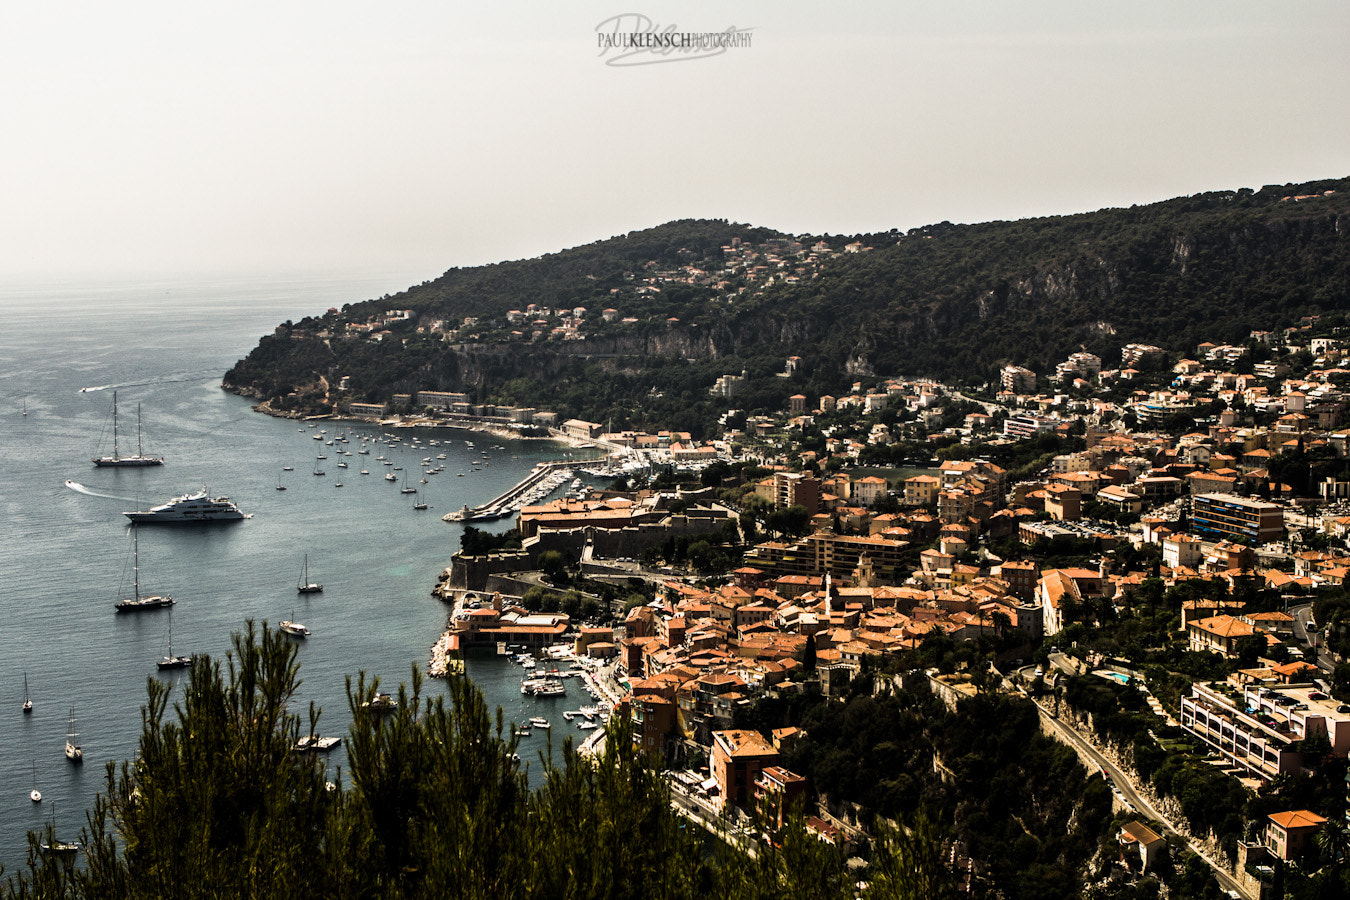 Photograph Villefranche by Paul Klensch on 500px